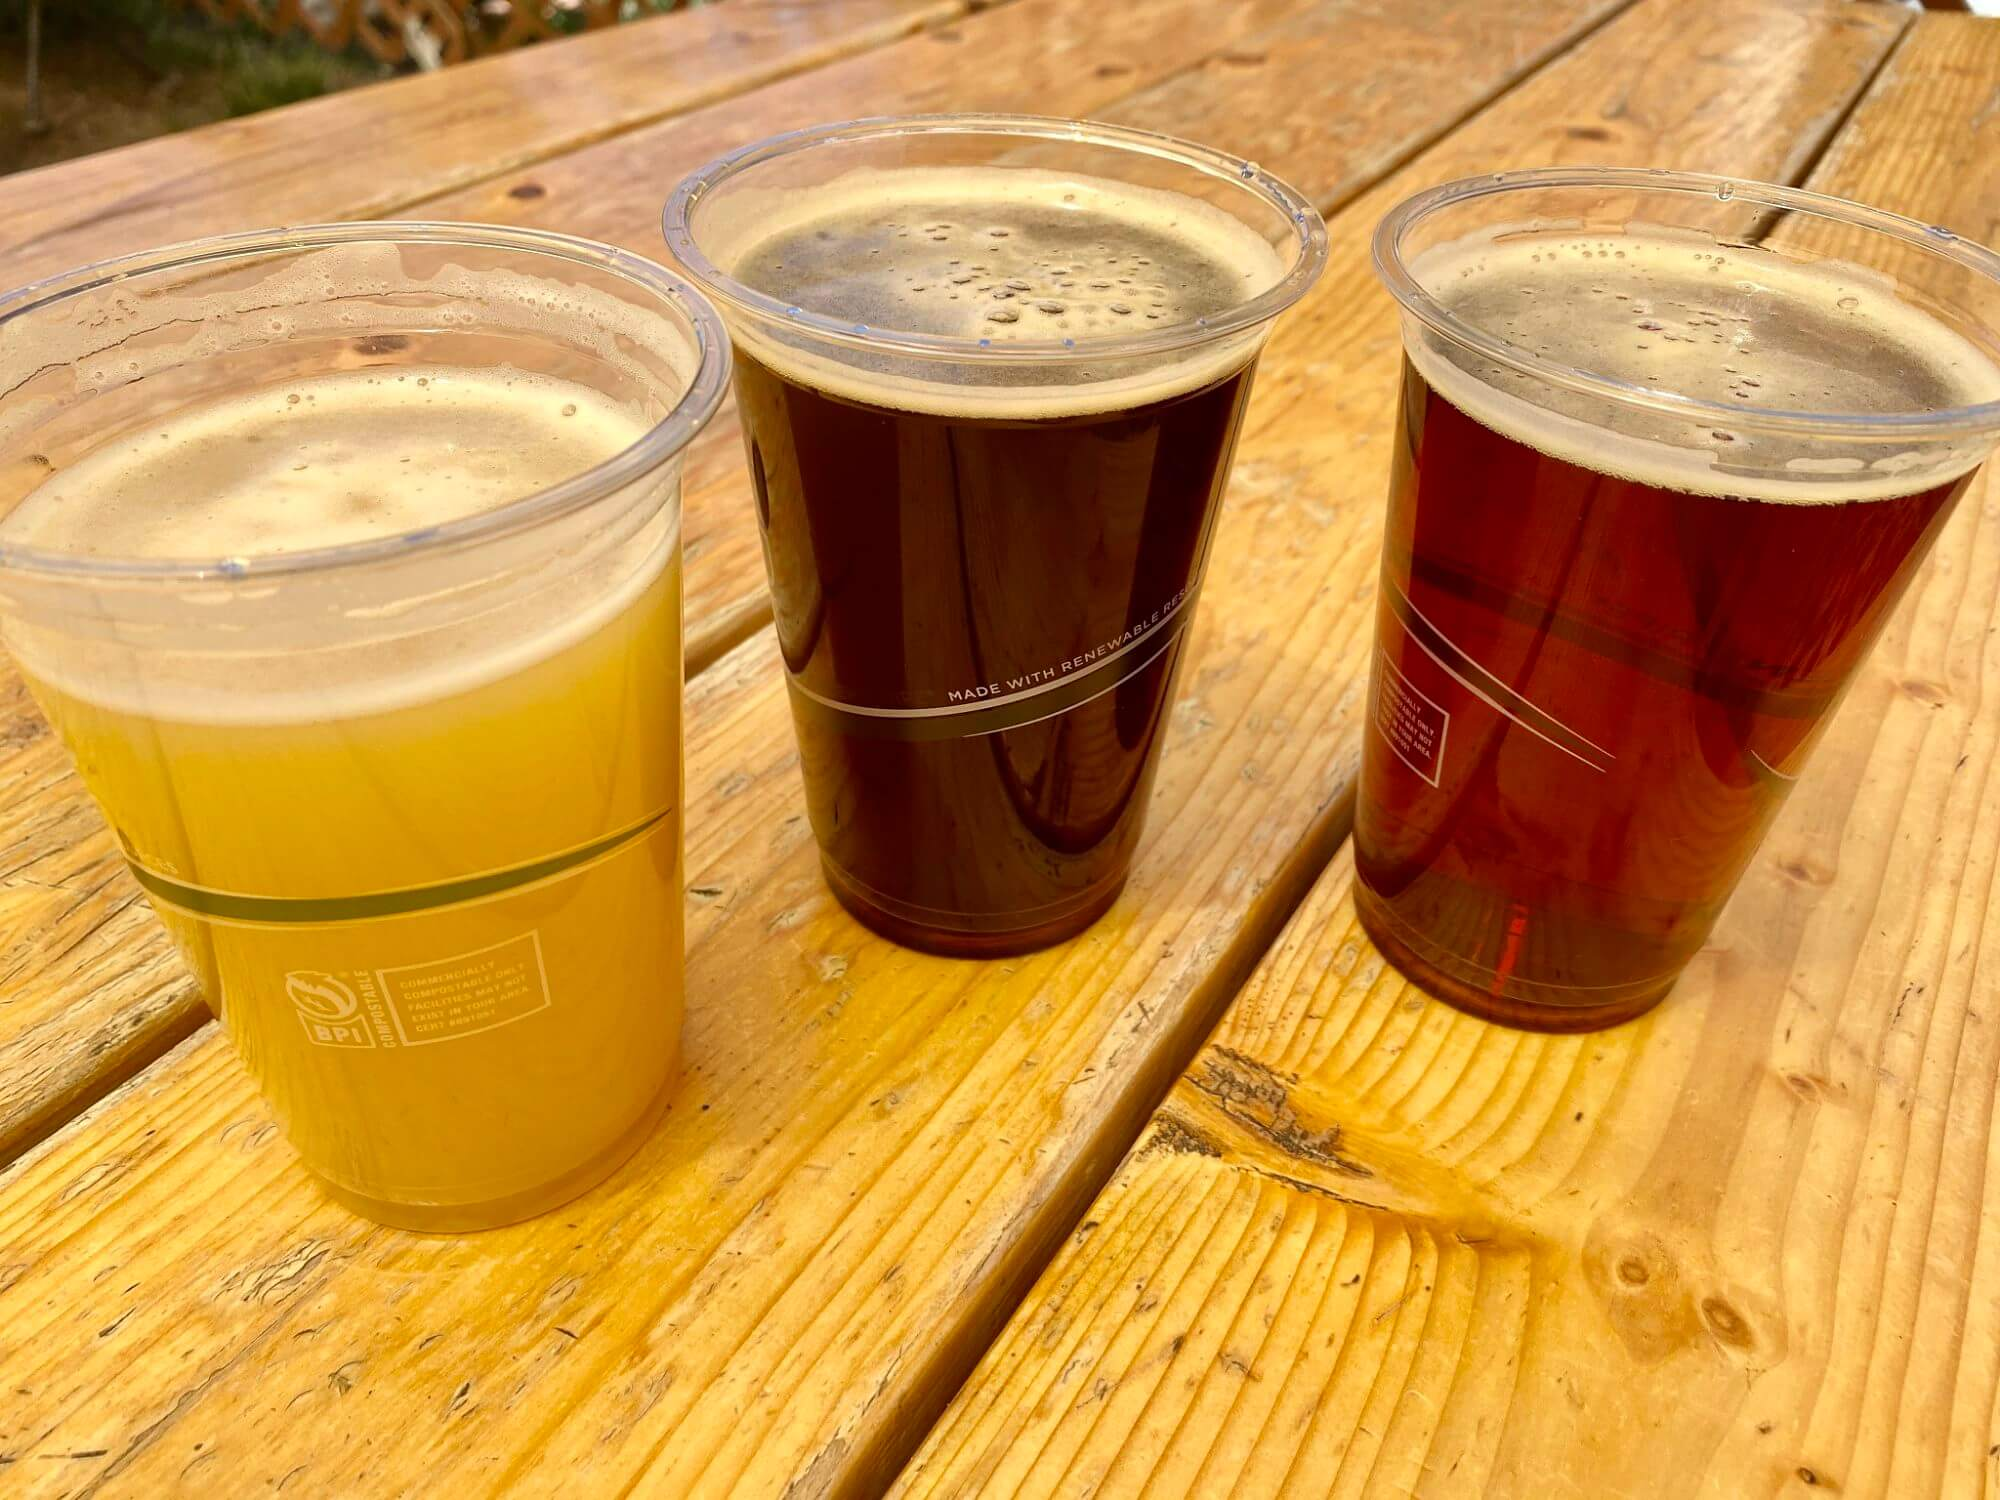 Three beers from June Lake Brewing